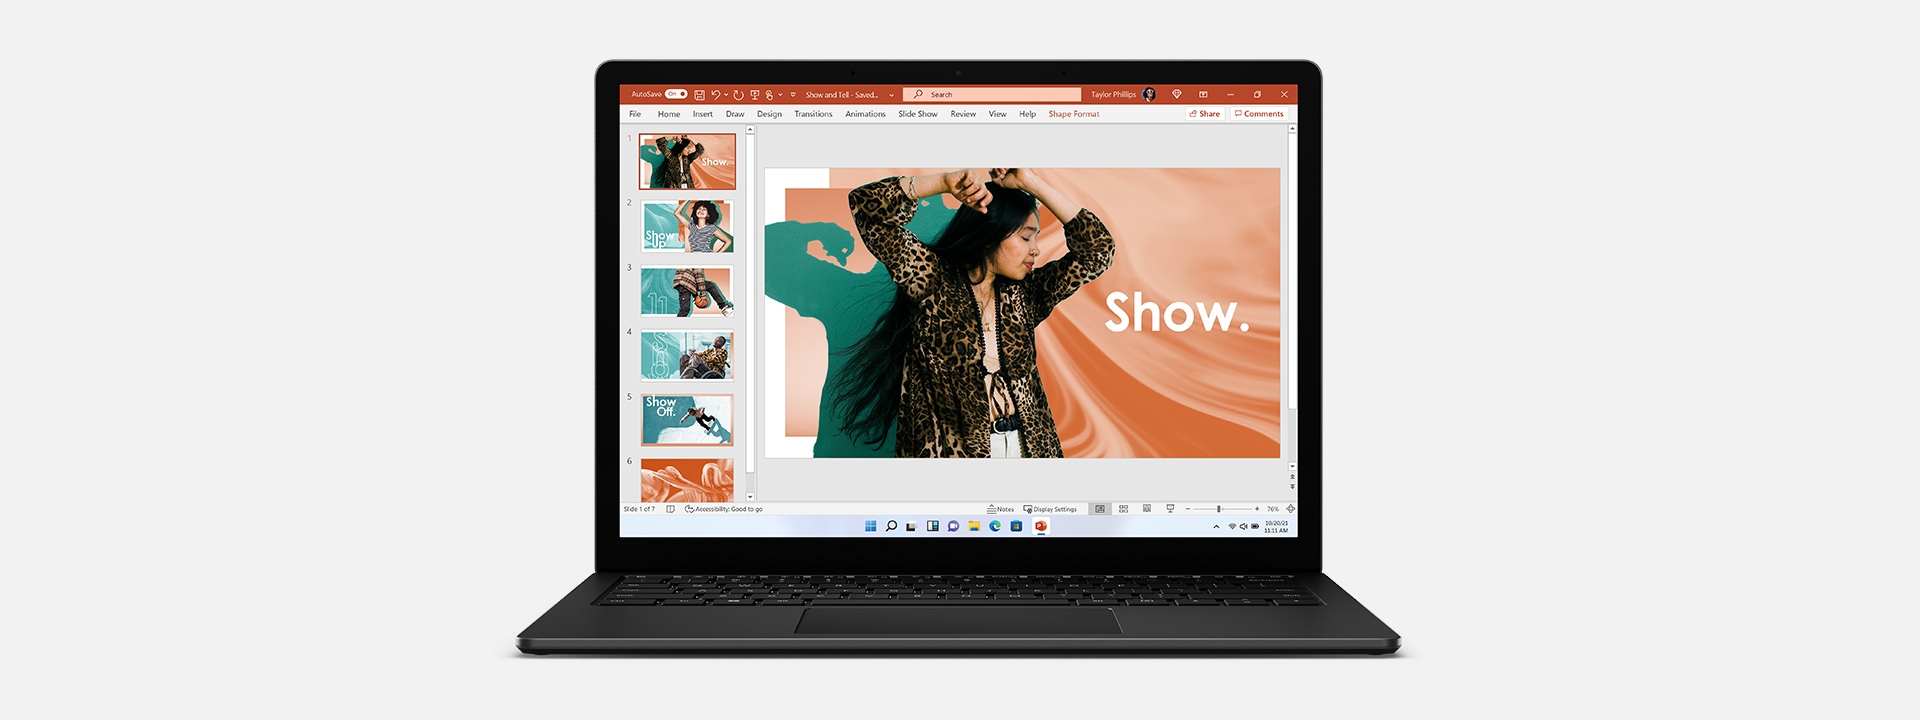 Surface Laptop 4 couleur Noir mat avec l'application Microsoft PowerPoint